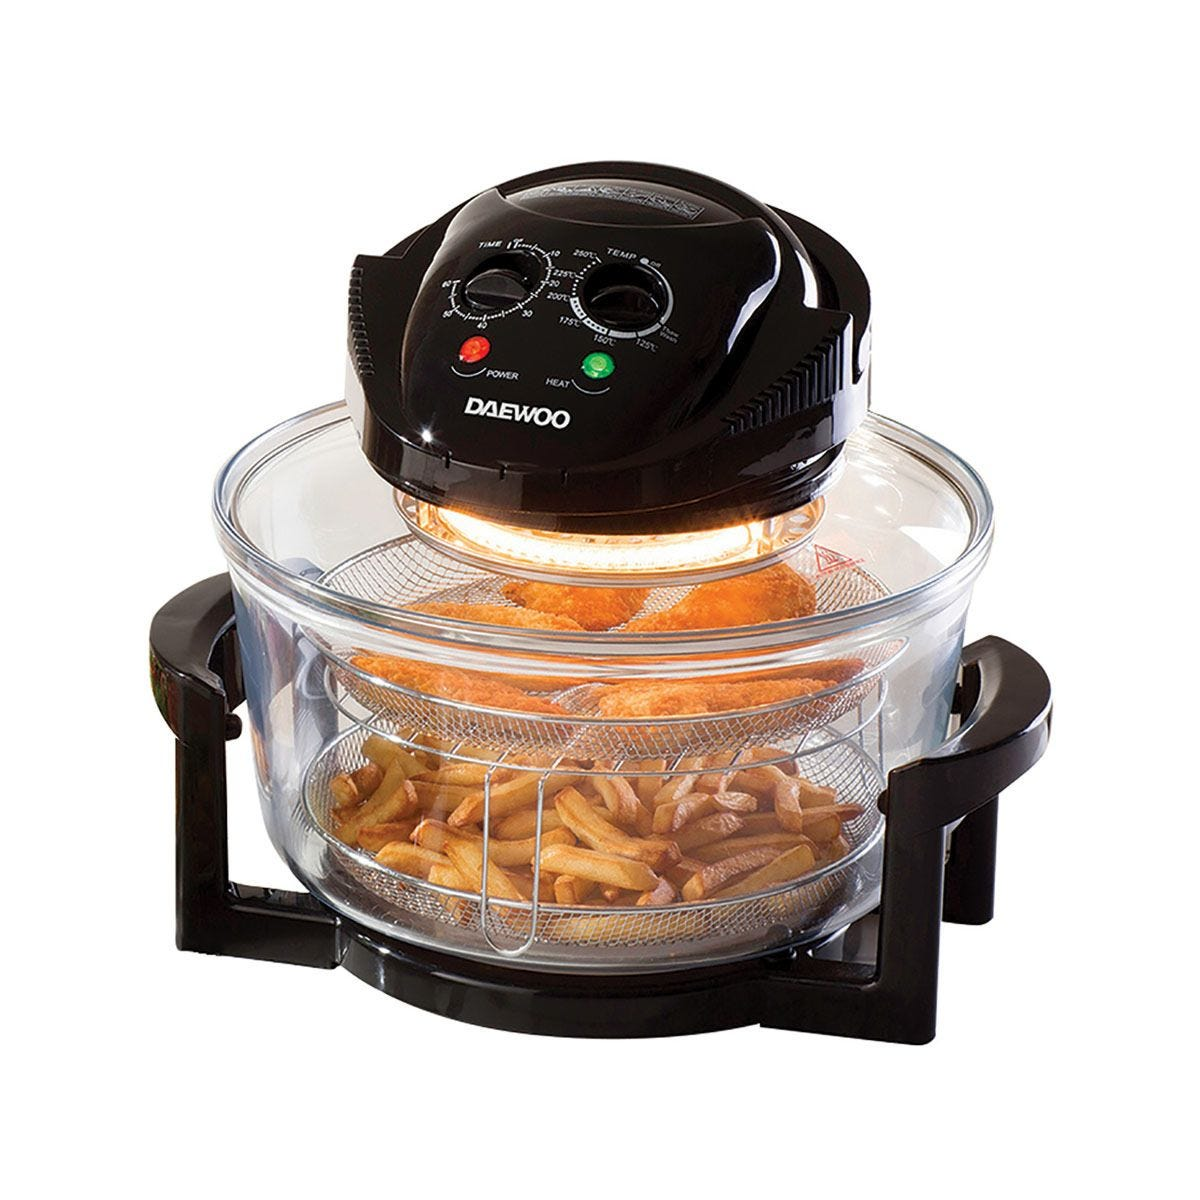 Daewoo 17L Halogen Air Fryer Low Fat Oven - Black